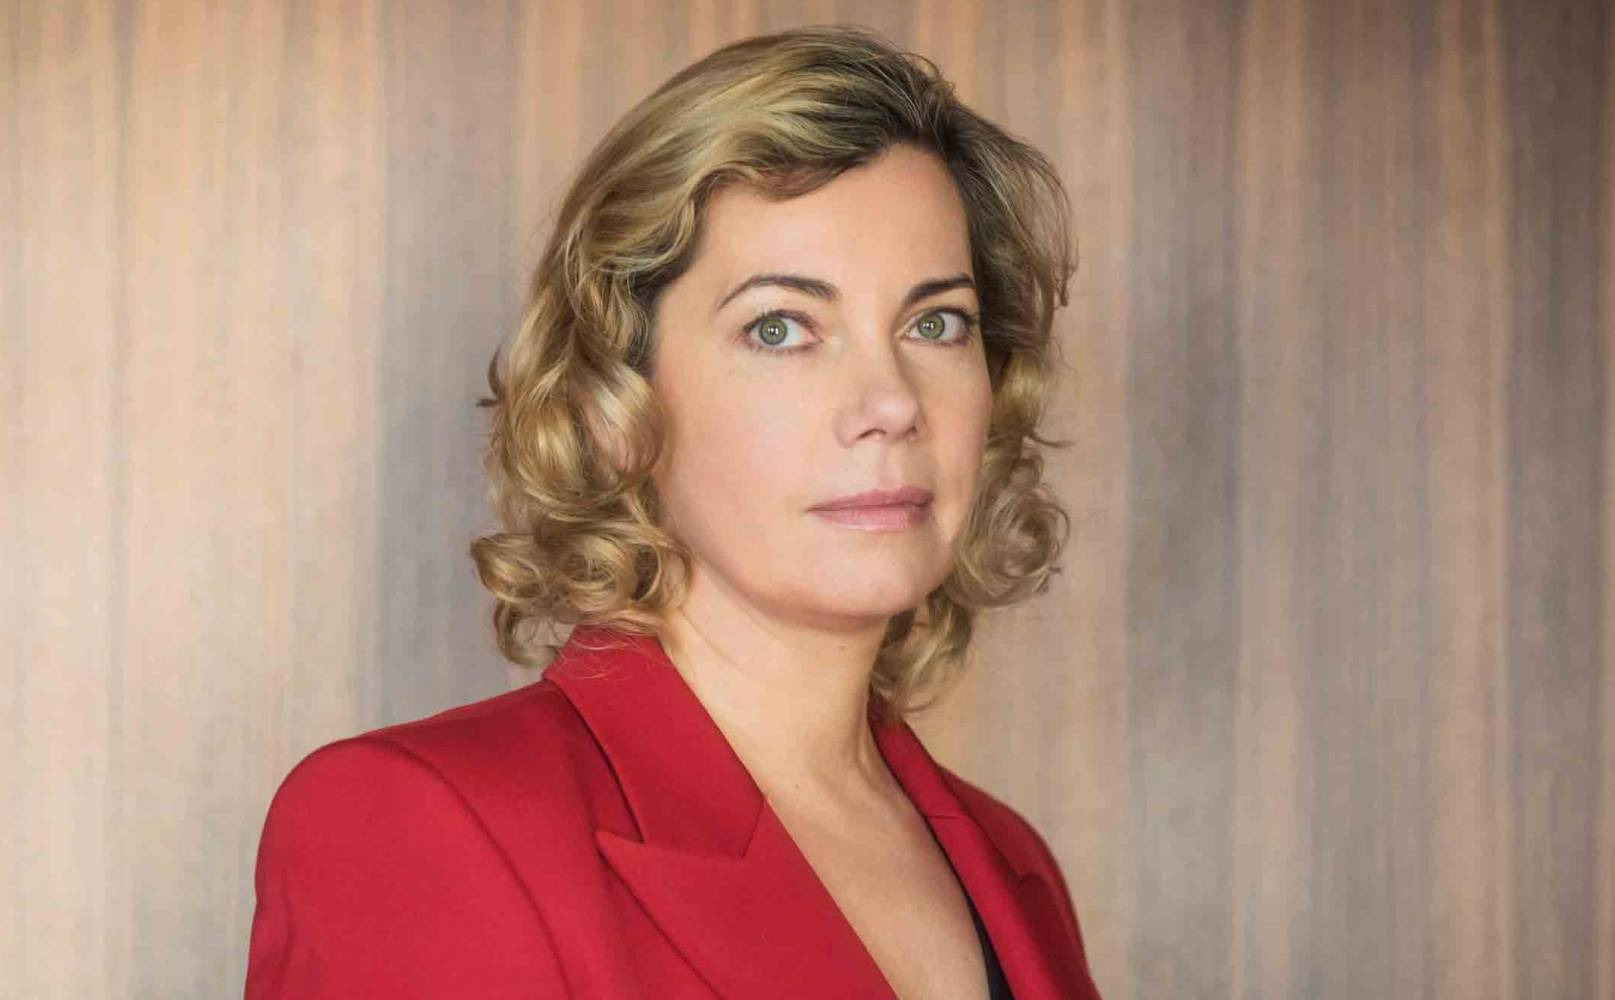 ANASTASSIA LAUTERBACH, Entrepreneur, Multi-Supervisory Board Member Artificial Intelligence and Cybersecurity Expert, London & Germany